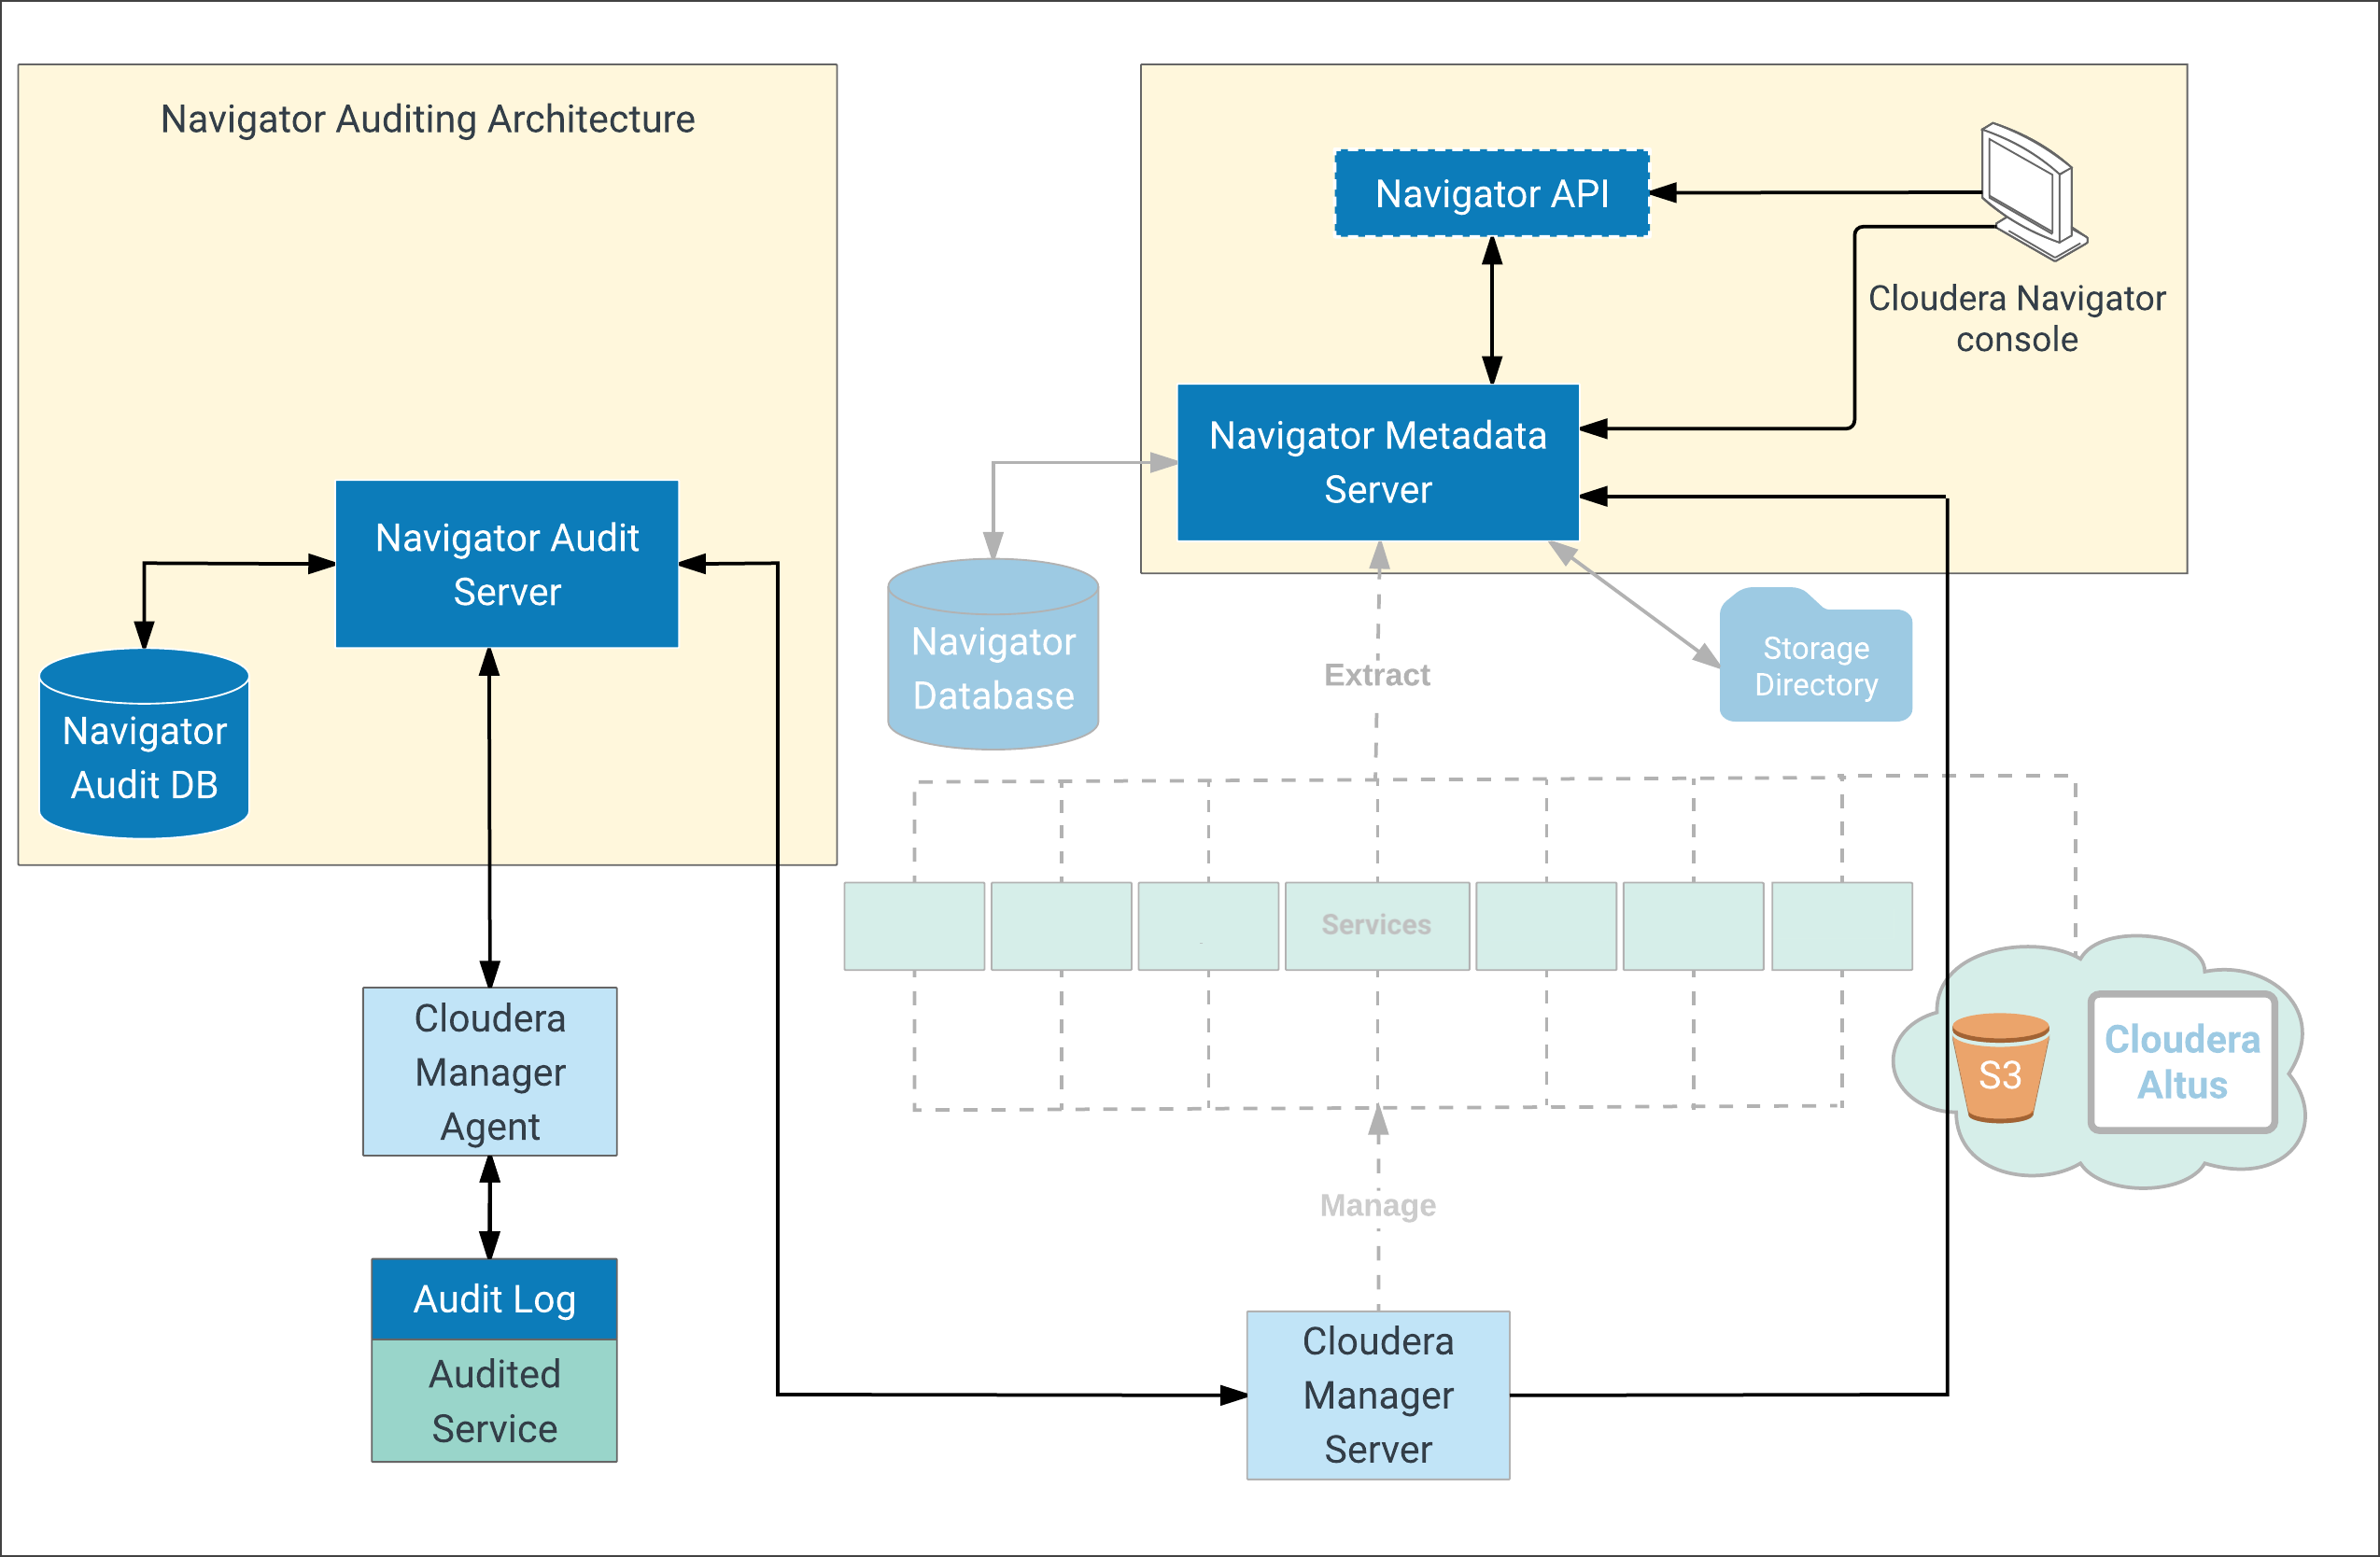 Navigator Audit Server Management | 6 3 x | Cloudera